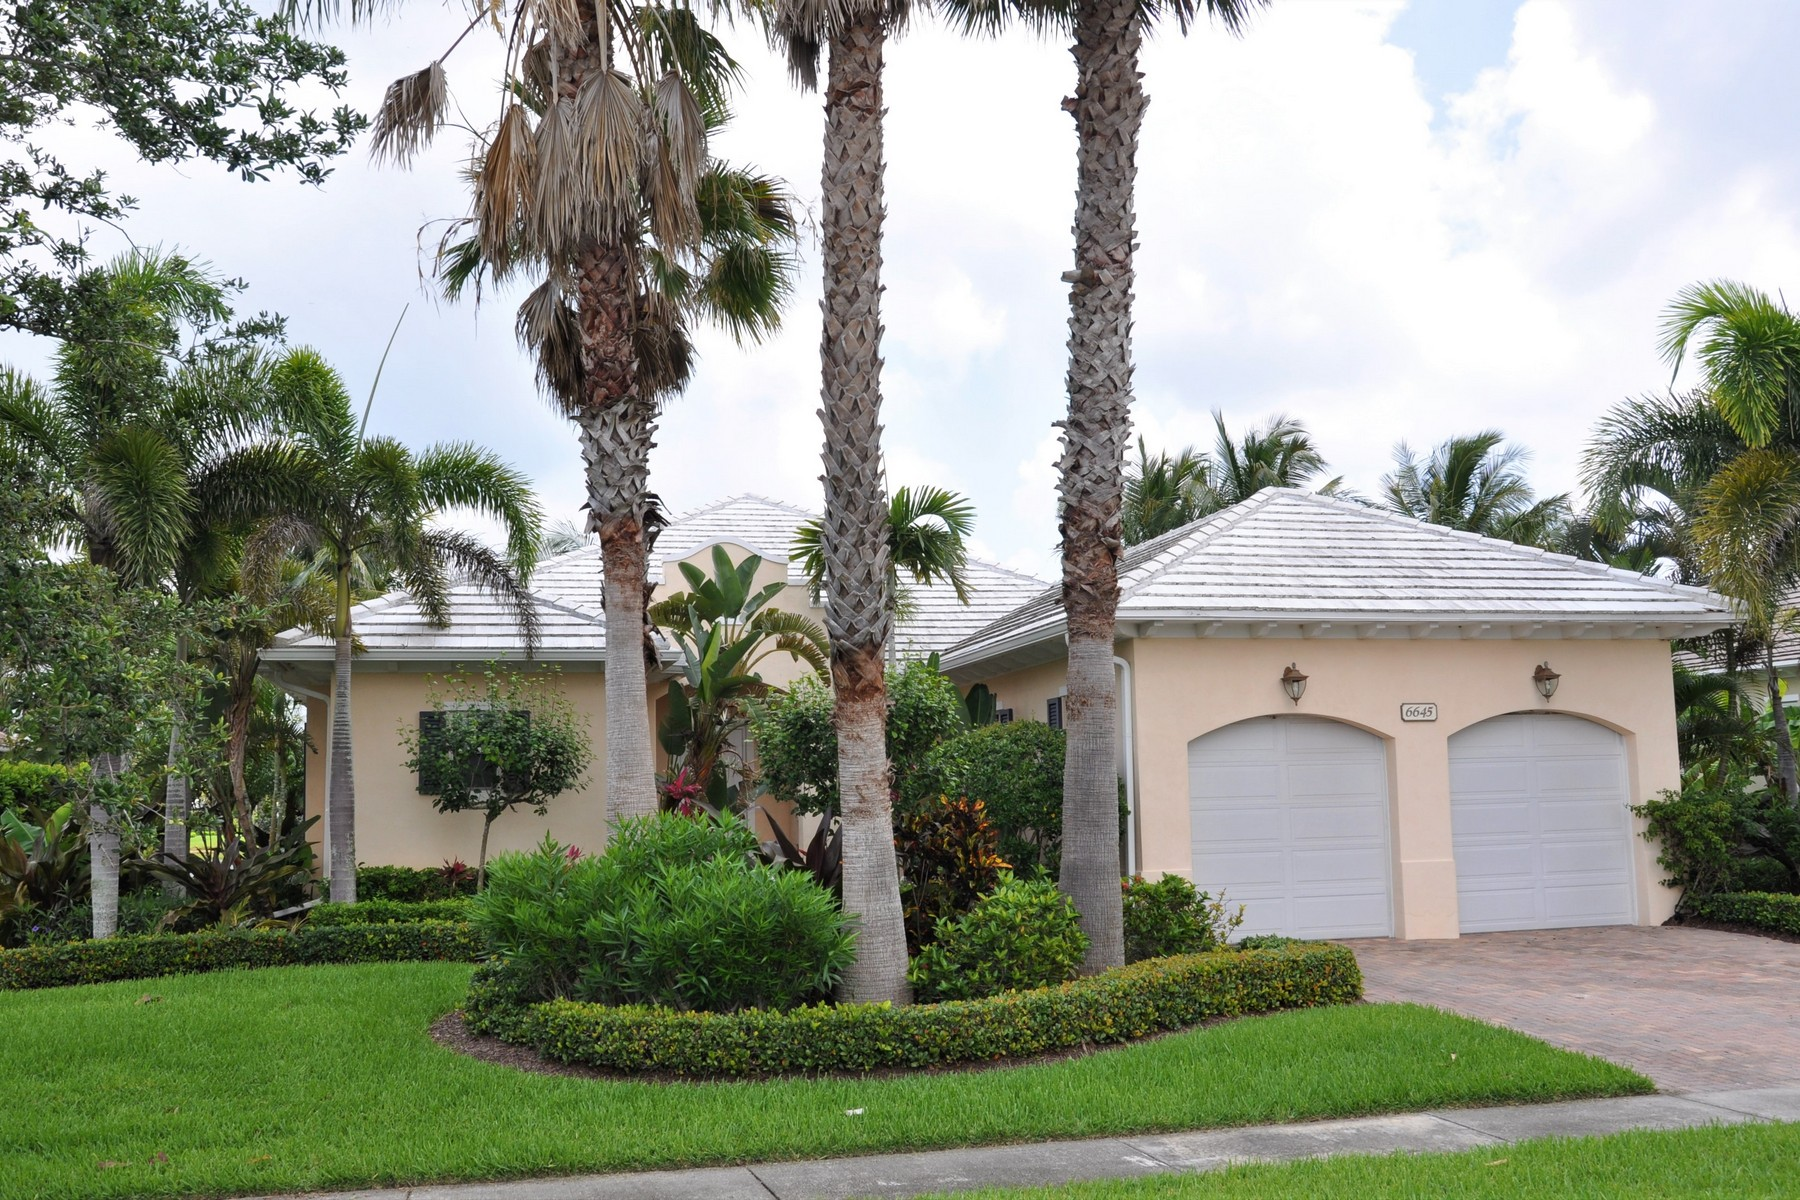 Single Family Home for Sale at Captivating Lakefront Home 6645 Martinique Way Vero Beach, Florida 32967 United States